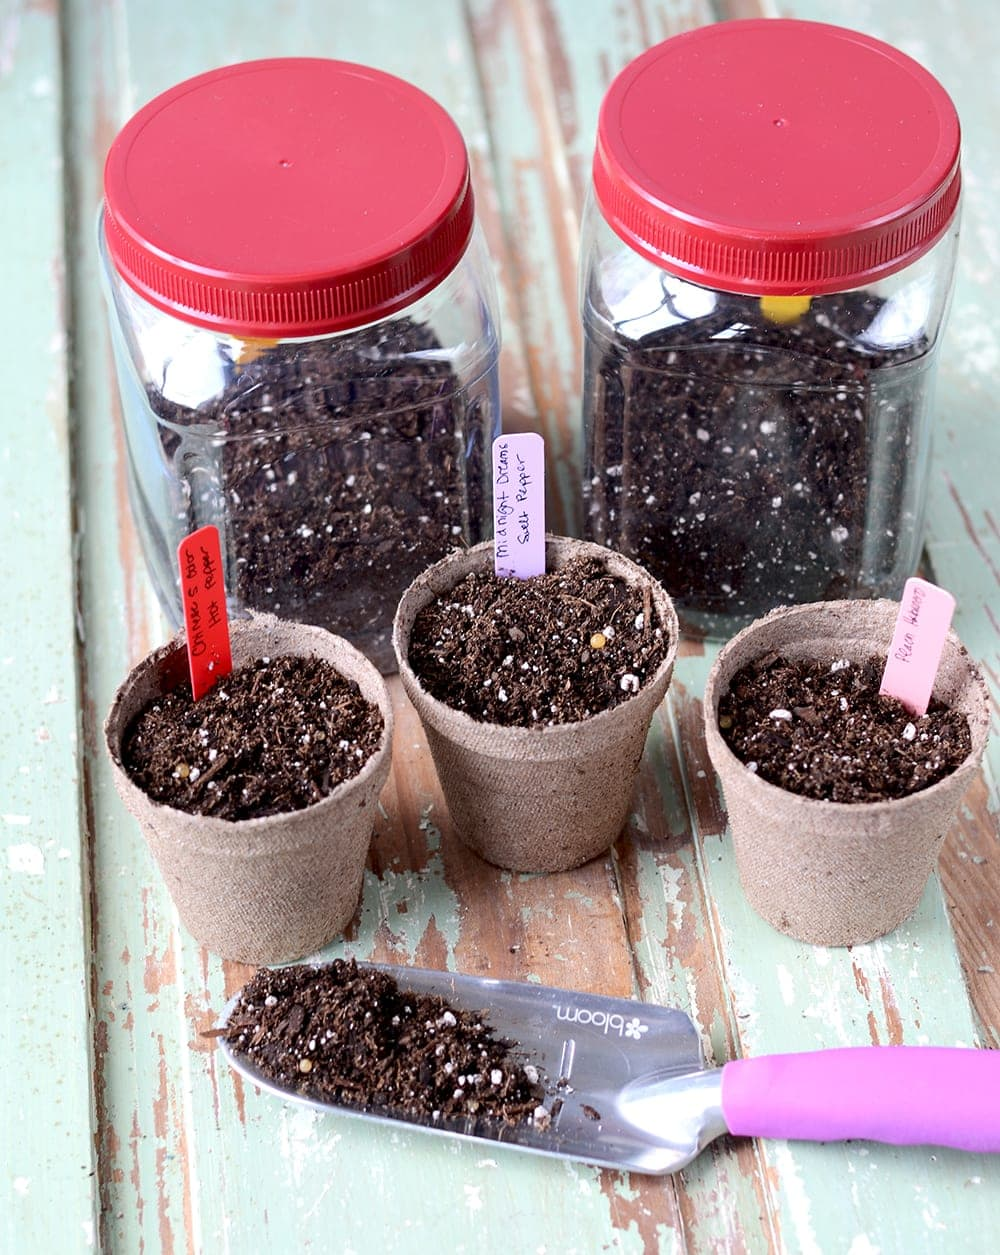 The arrival of spring means its time to start working on your vegetable and herb gardens. Follow these Seed Starting Tips to get started! | vintagekitty.com